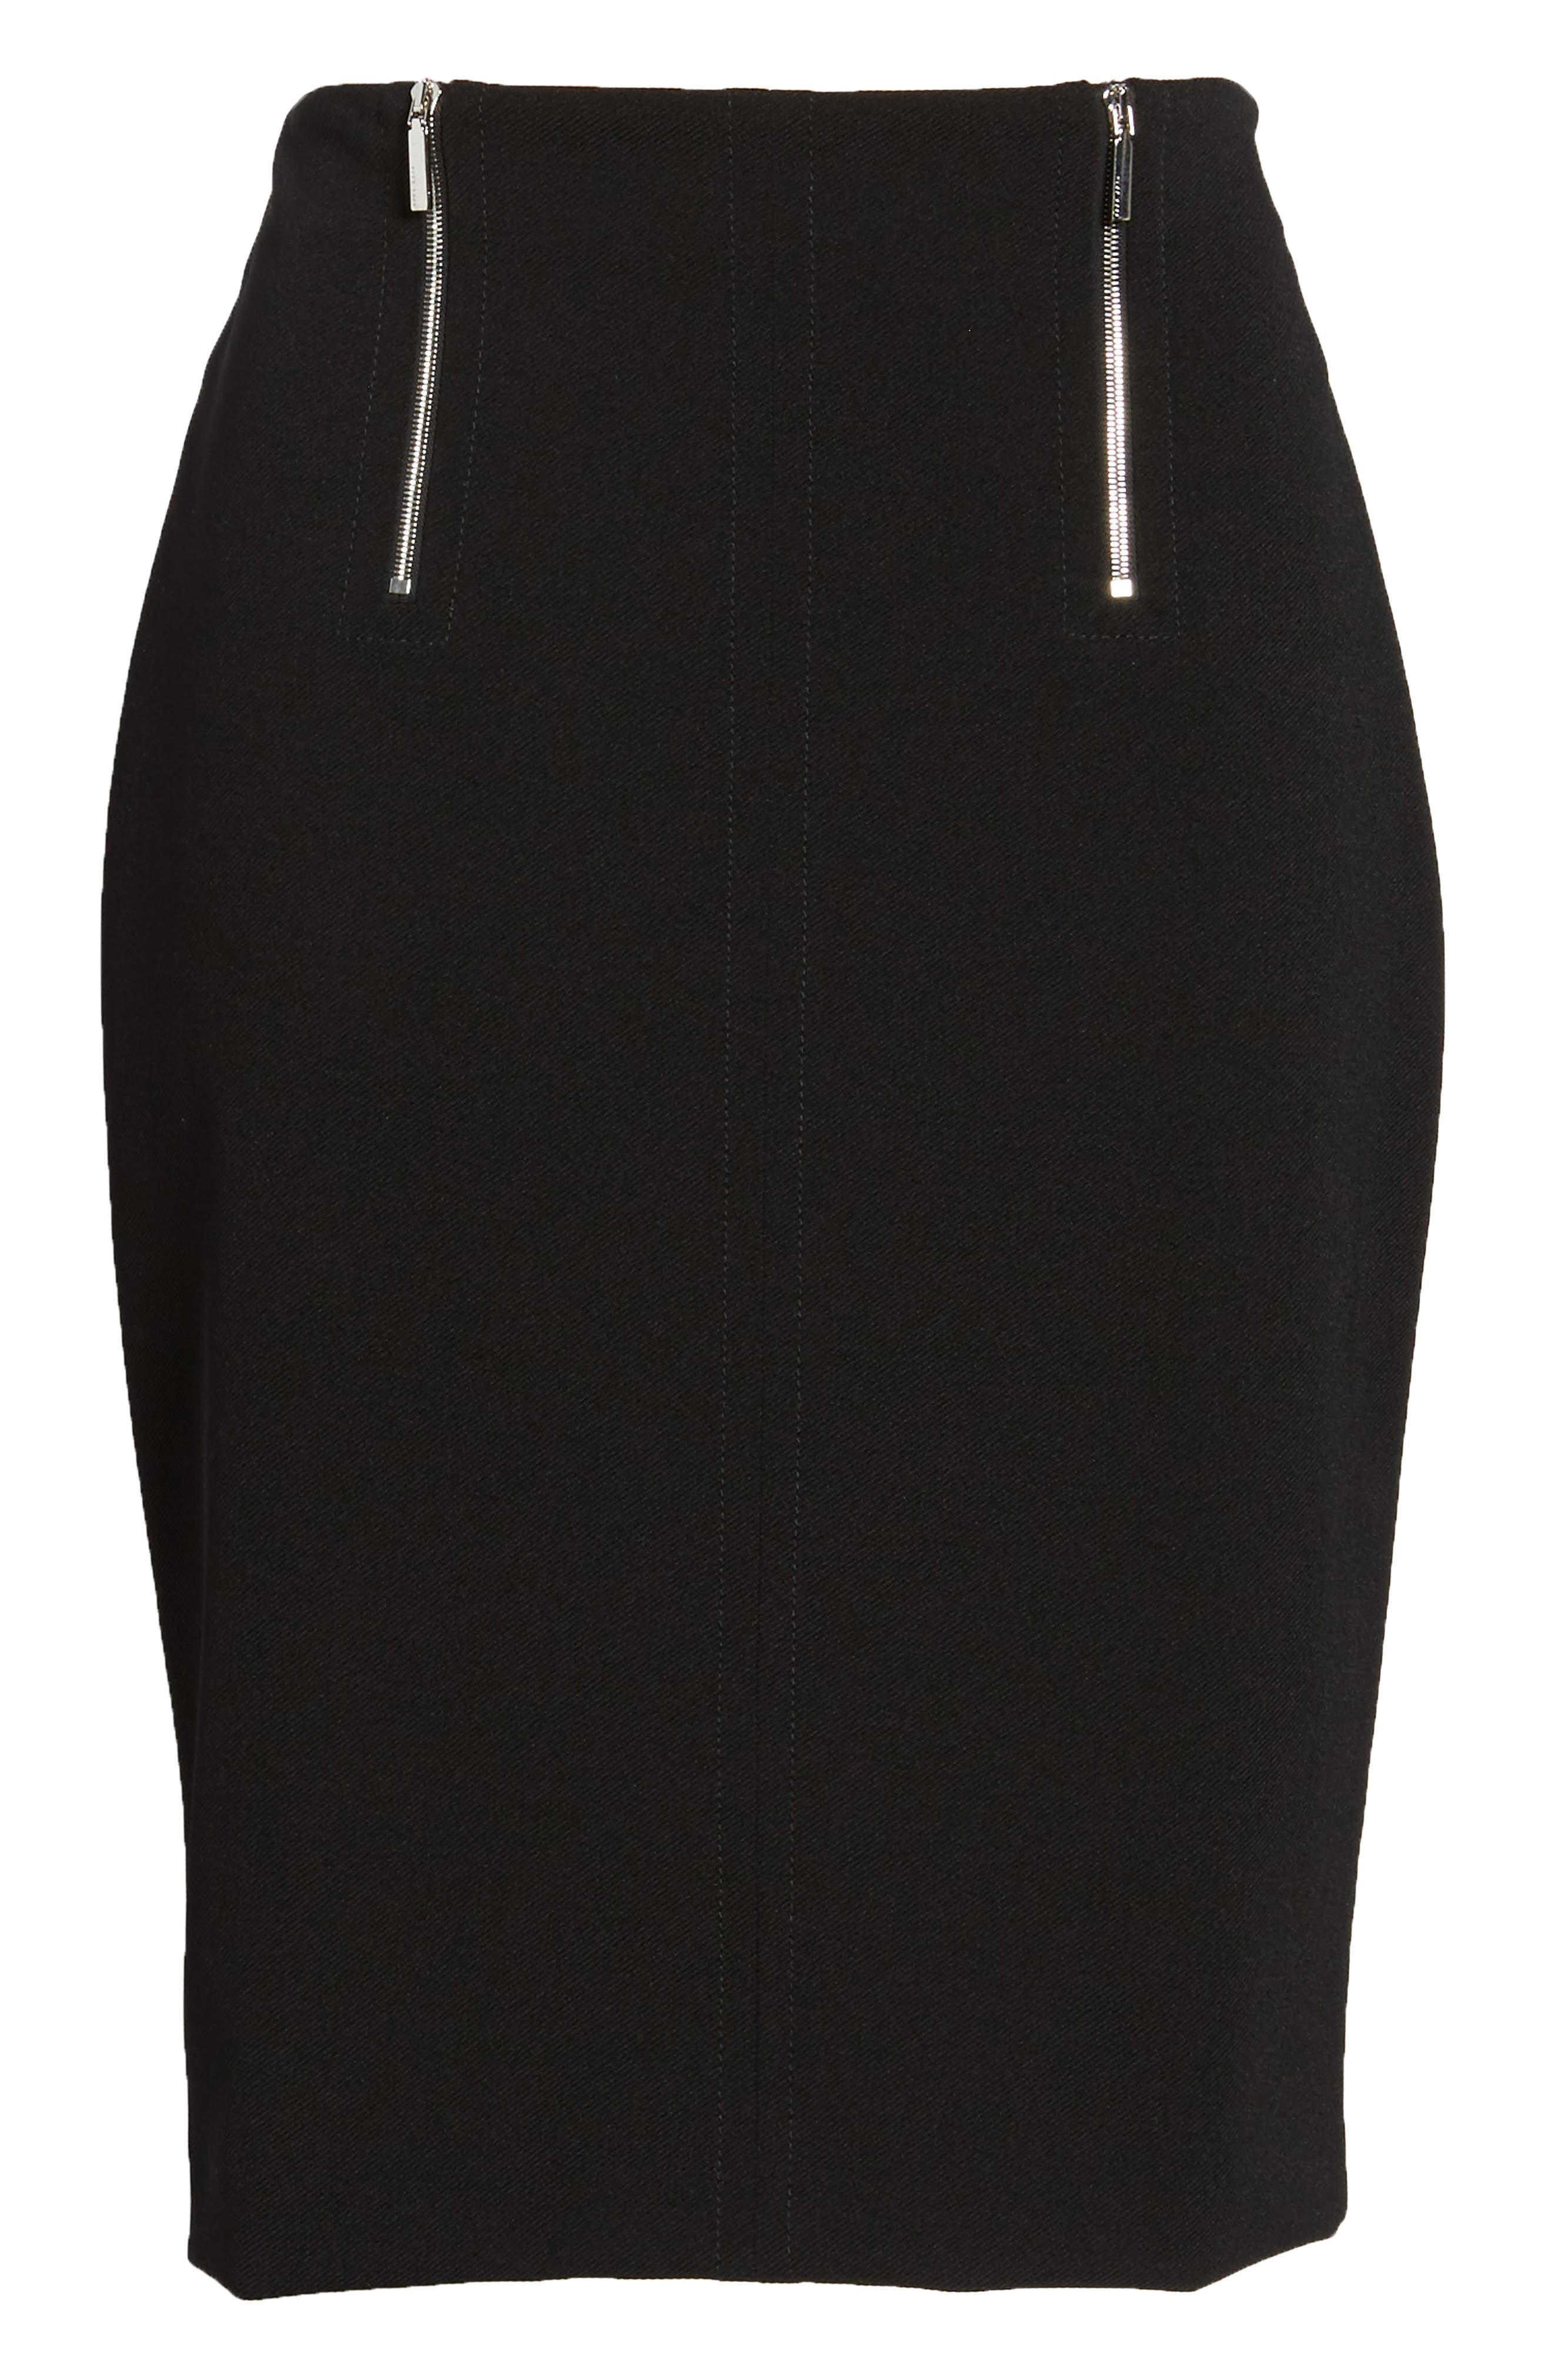 Vinueza Twill Jersey Suit Skirt,                             Alternate thumbnail 6, color,                             001